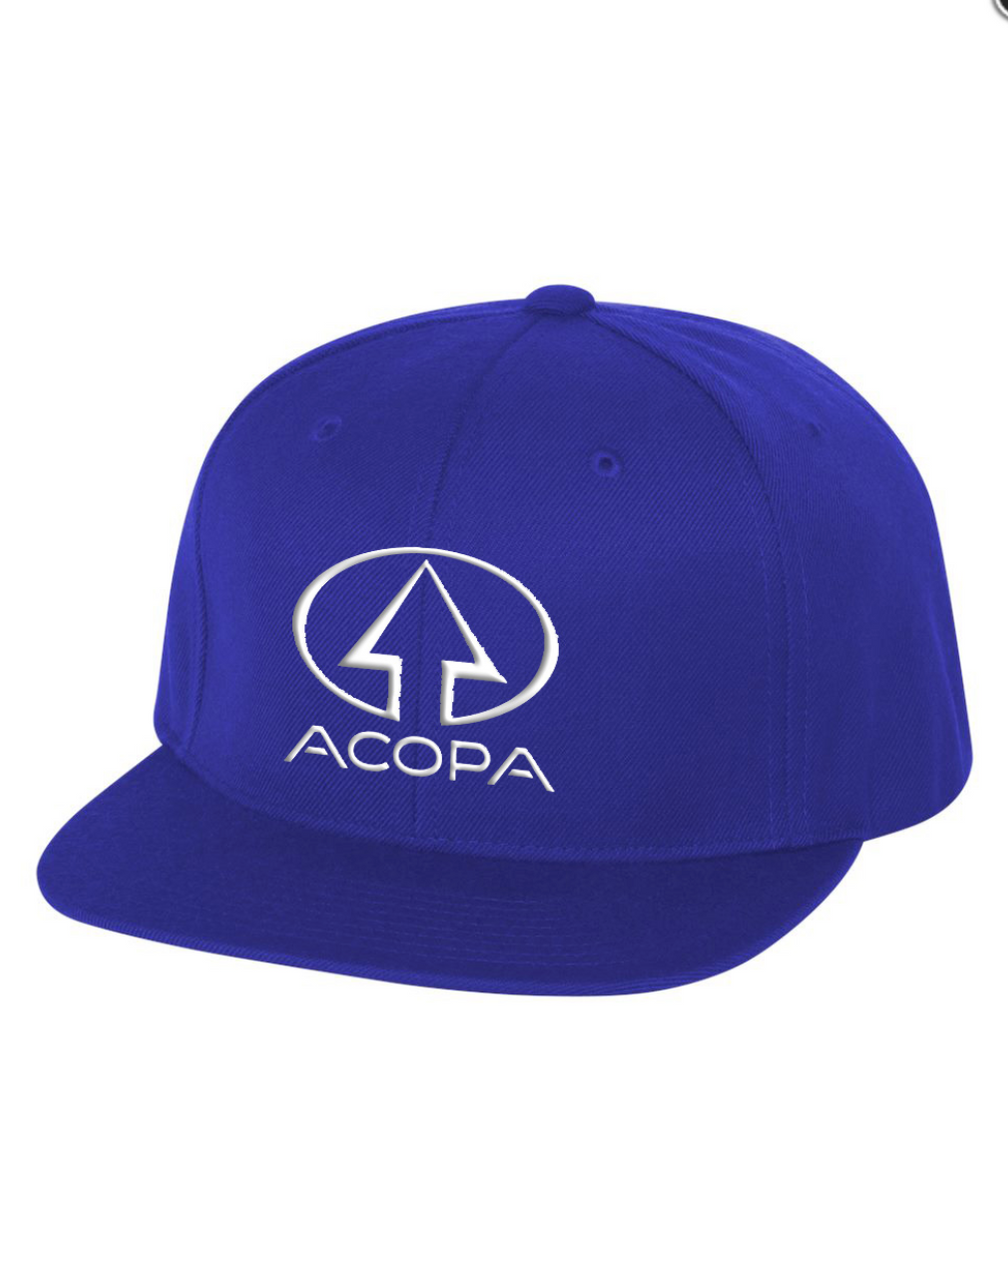 Blue Acopa Hat with White Embroidered Logo